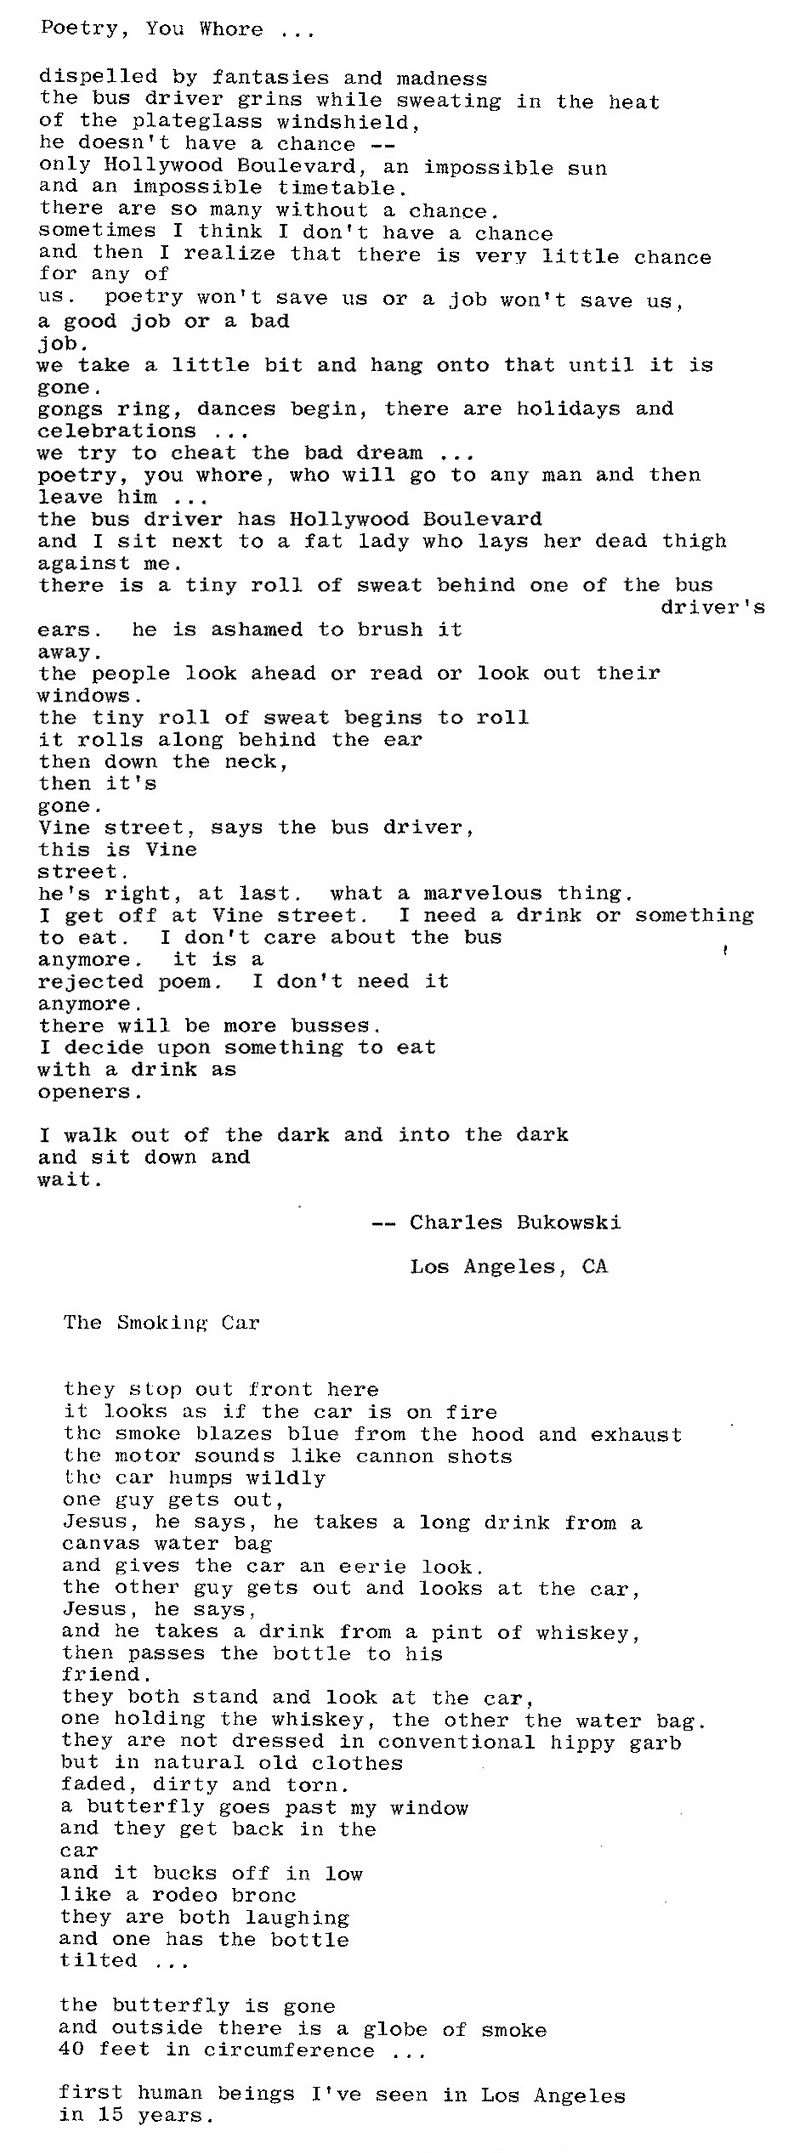 poetry-you-whore.png